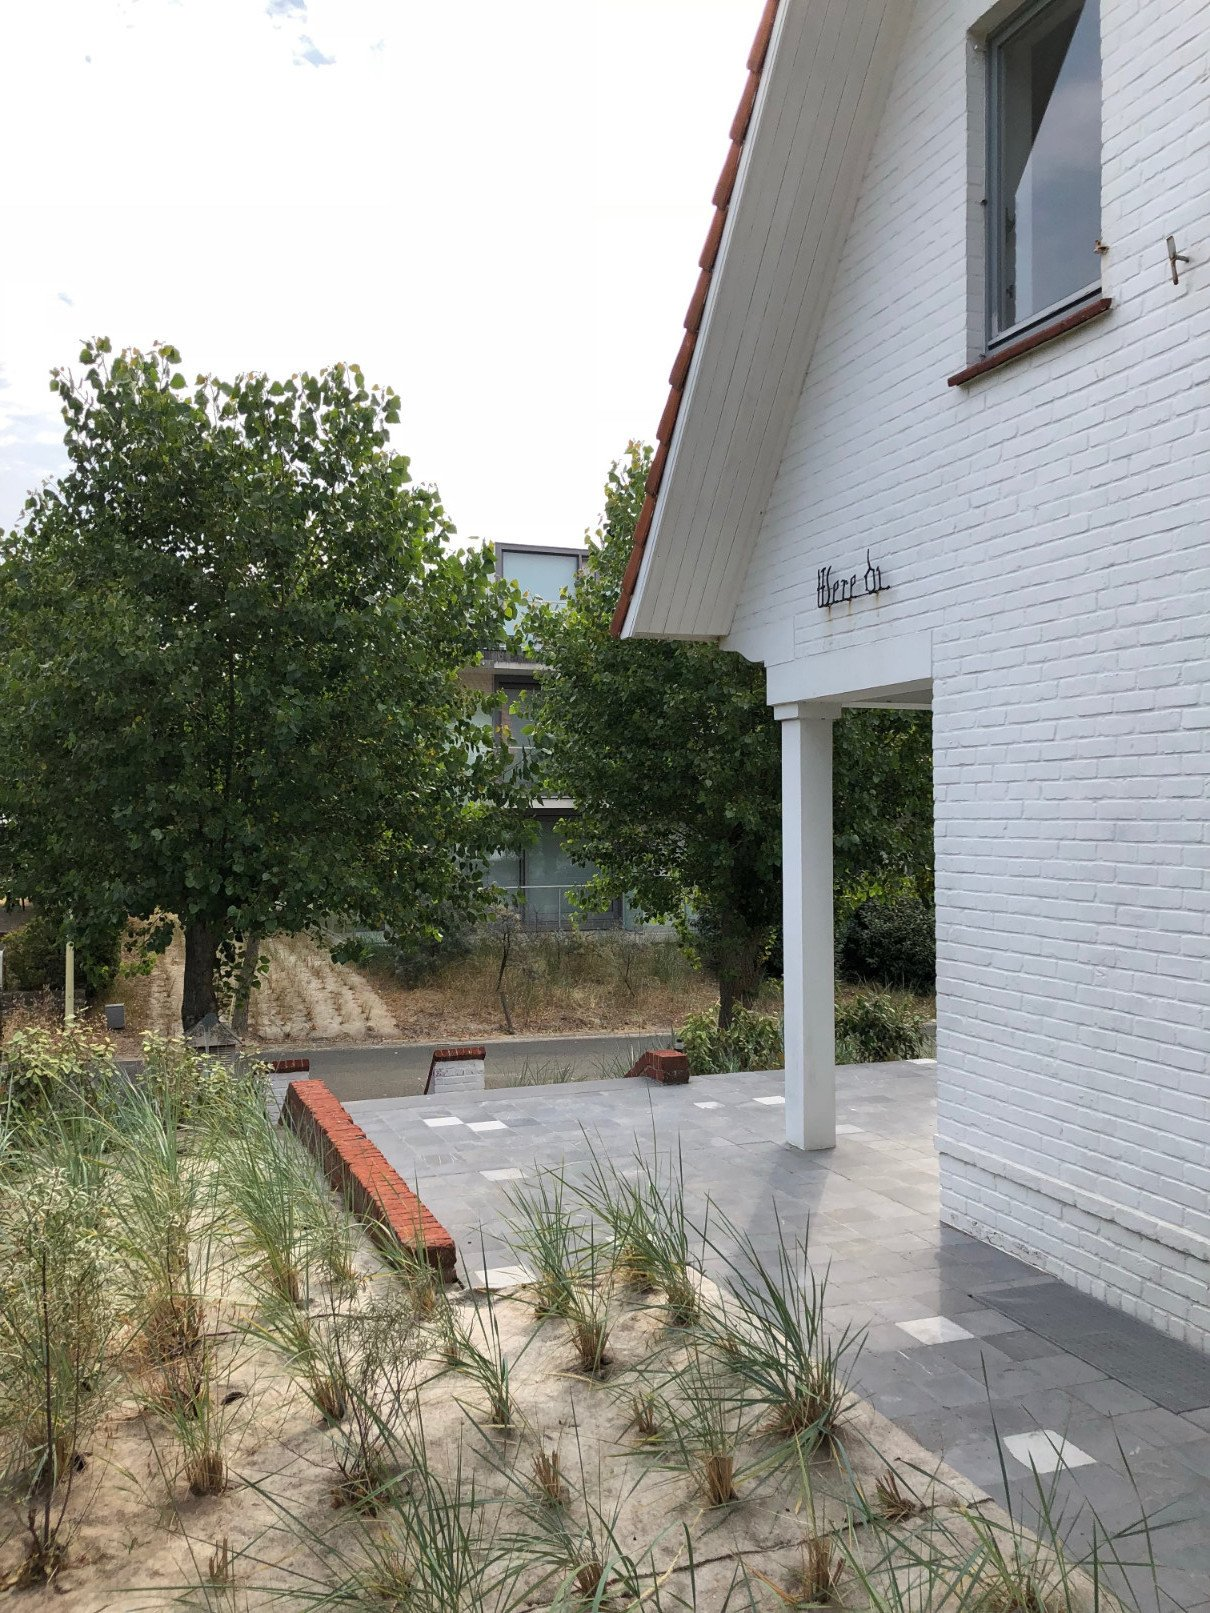 Rietveldprojects-Villa Were Di - Te Koop : Te Huur (per week)26.jpg